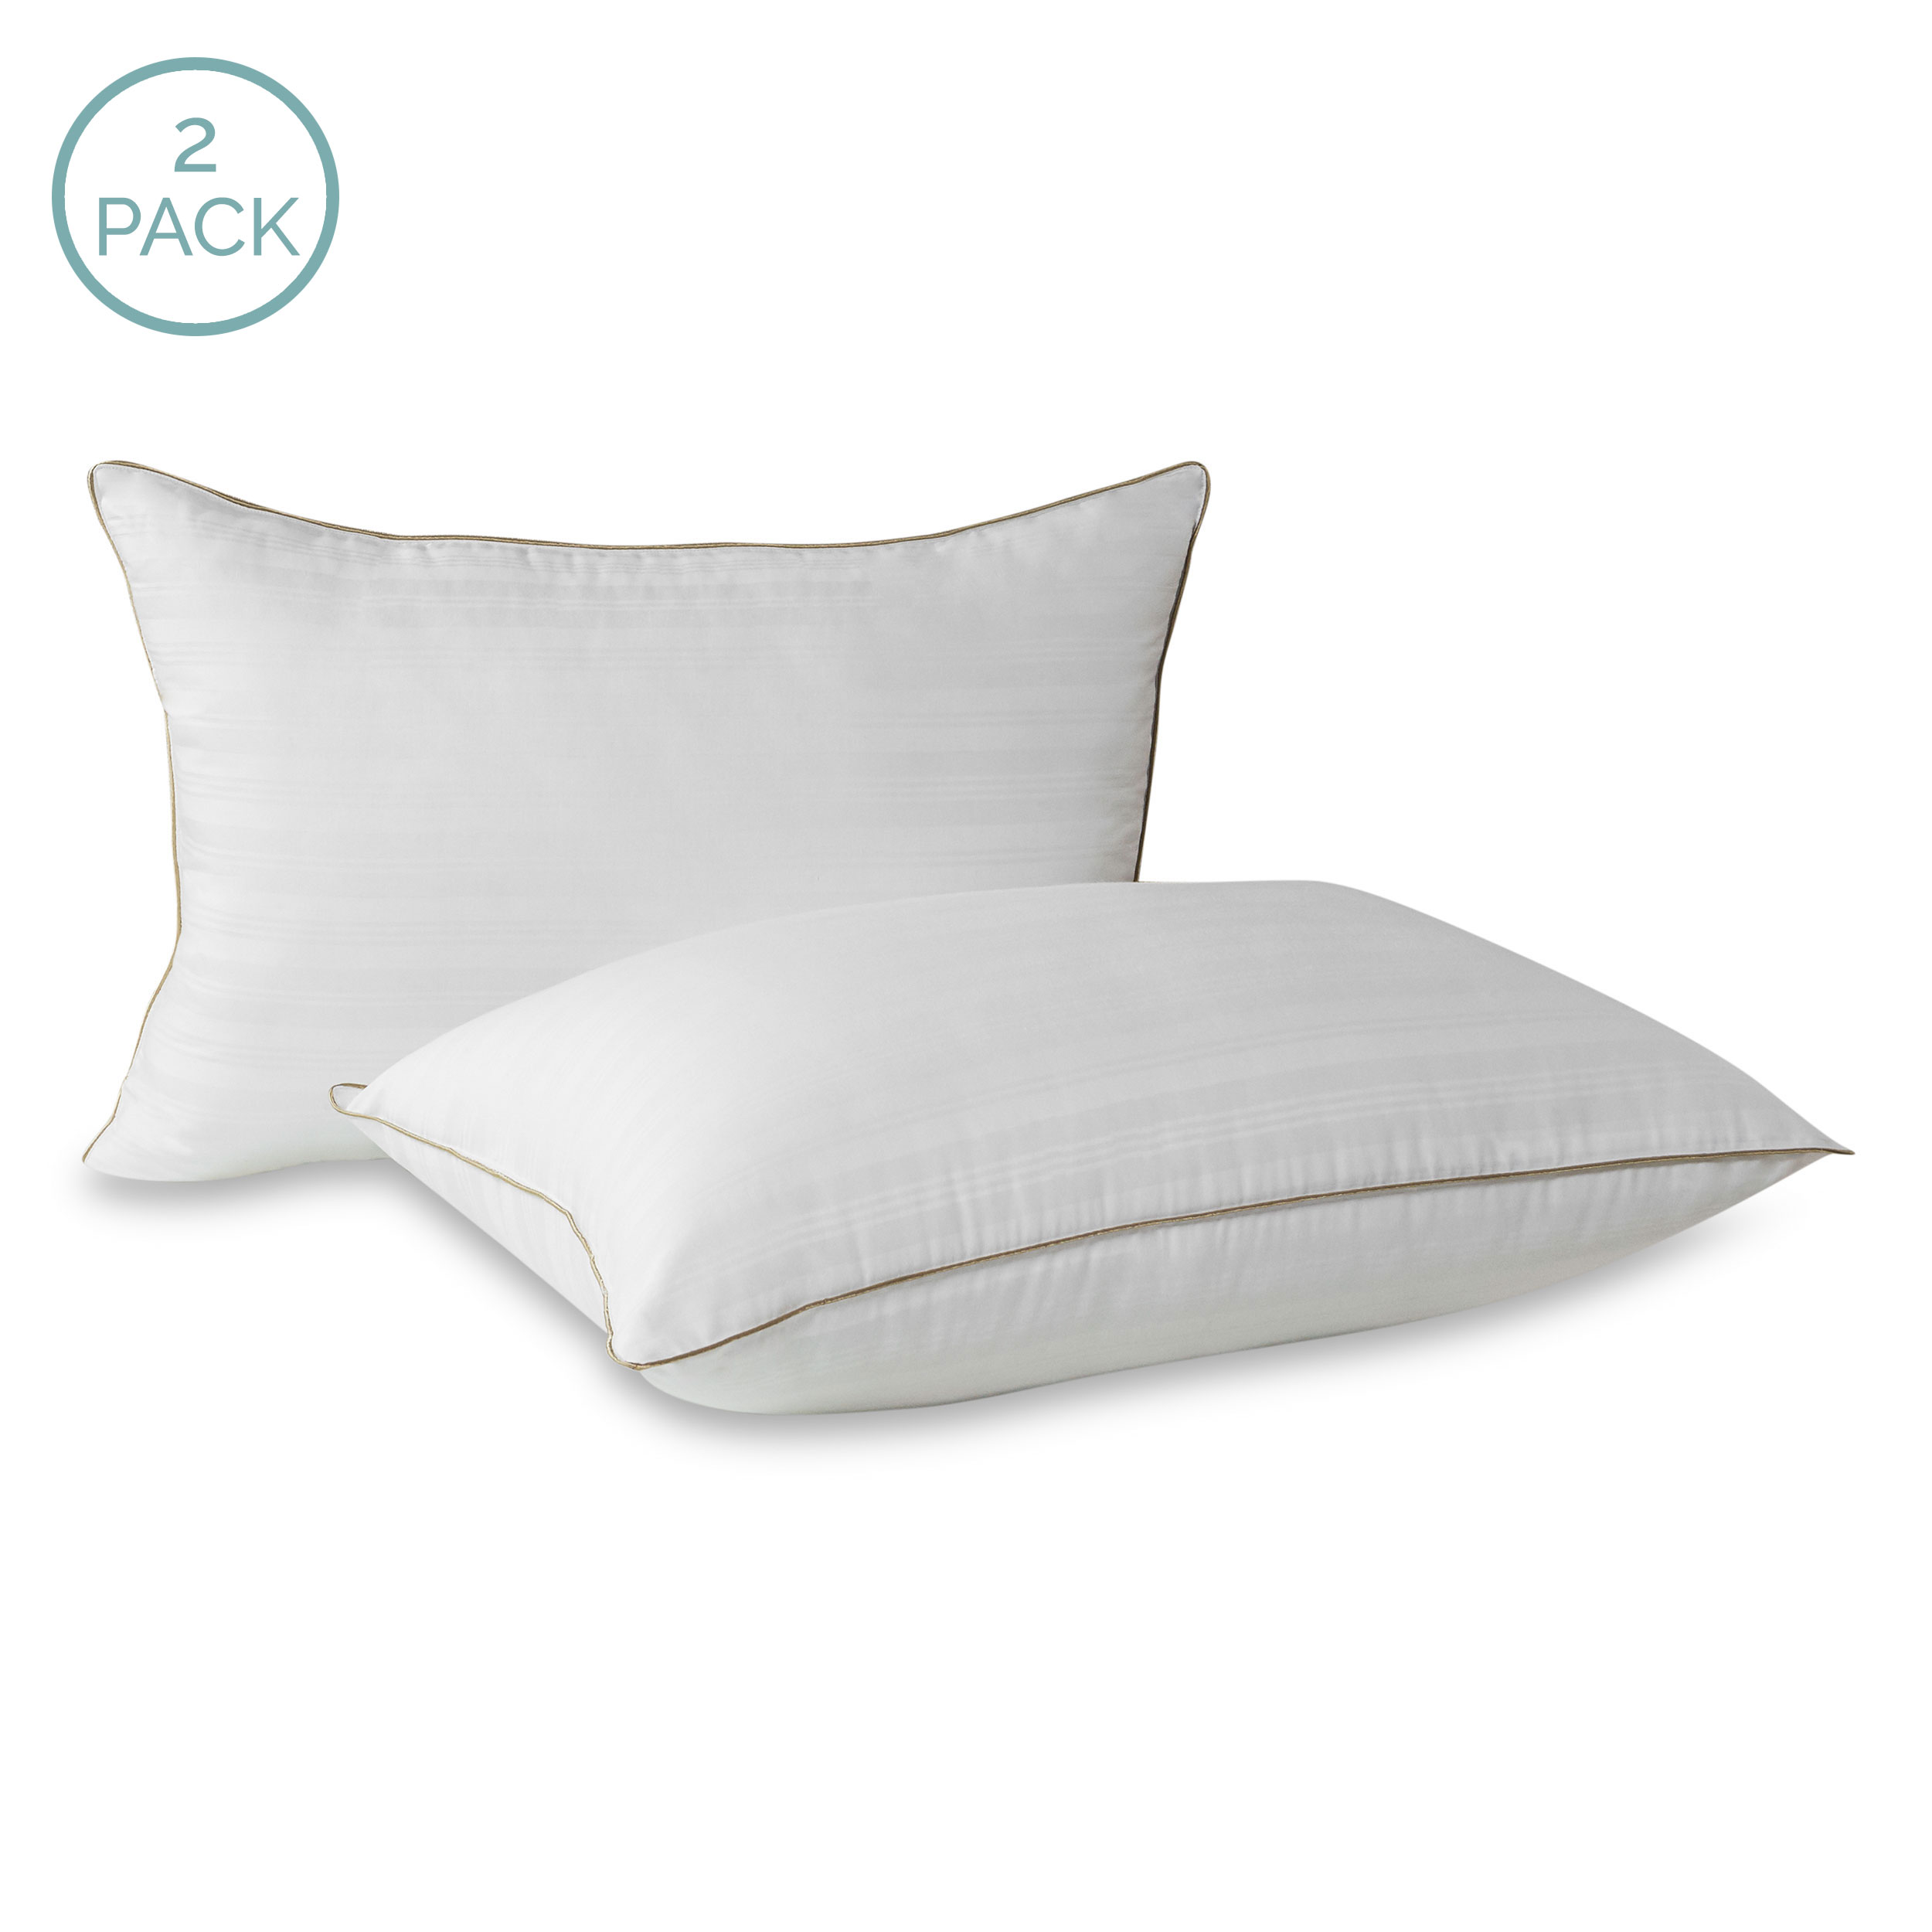 Beautyrest 174 Down Alternative Pillow 2 Pack Livecomfortably